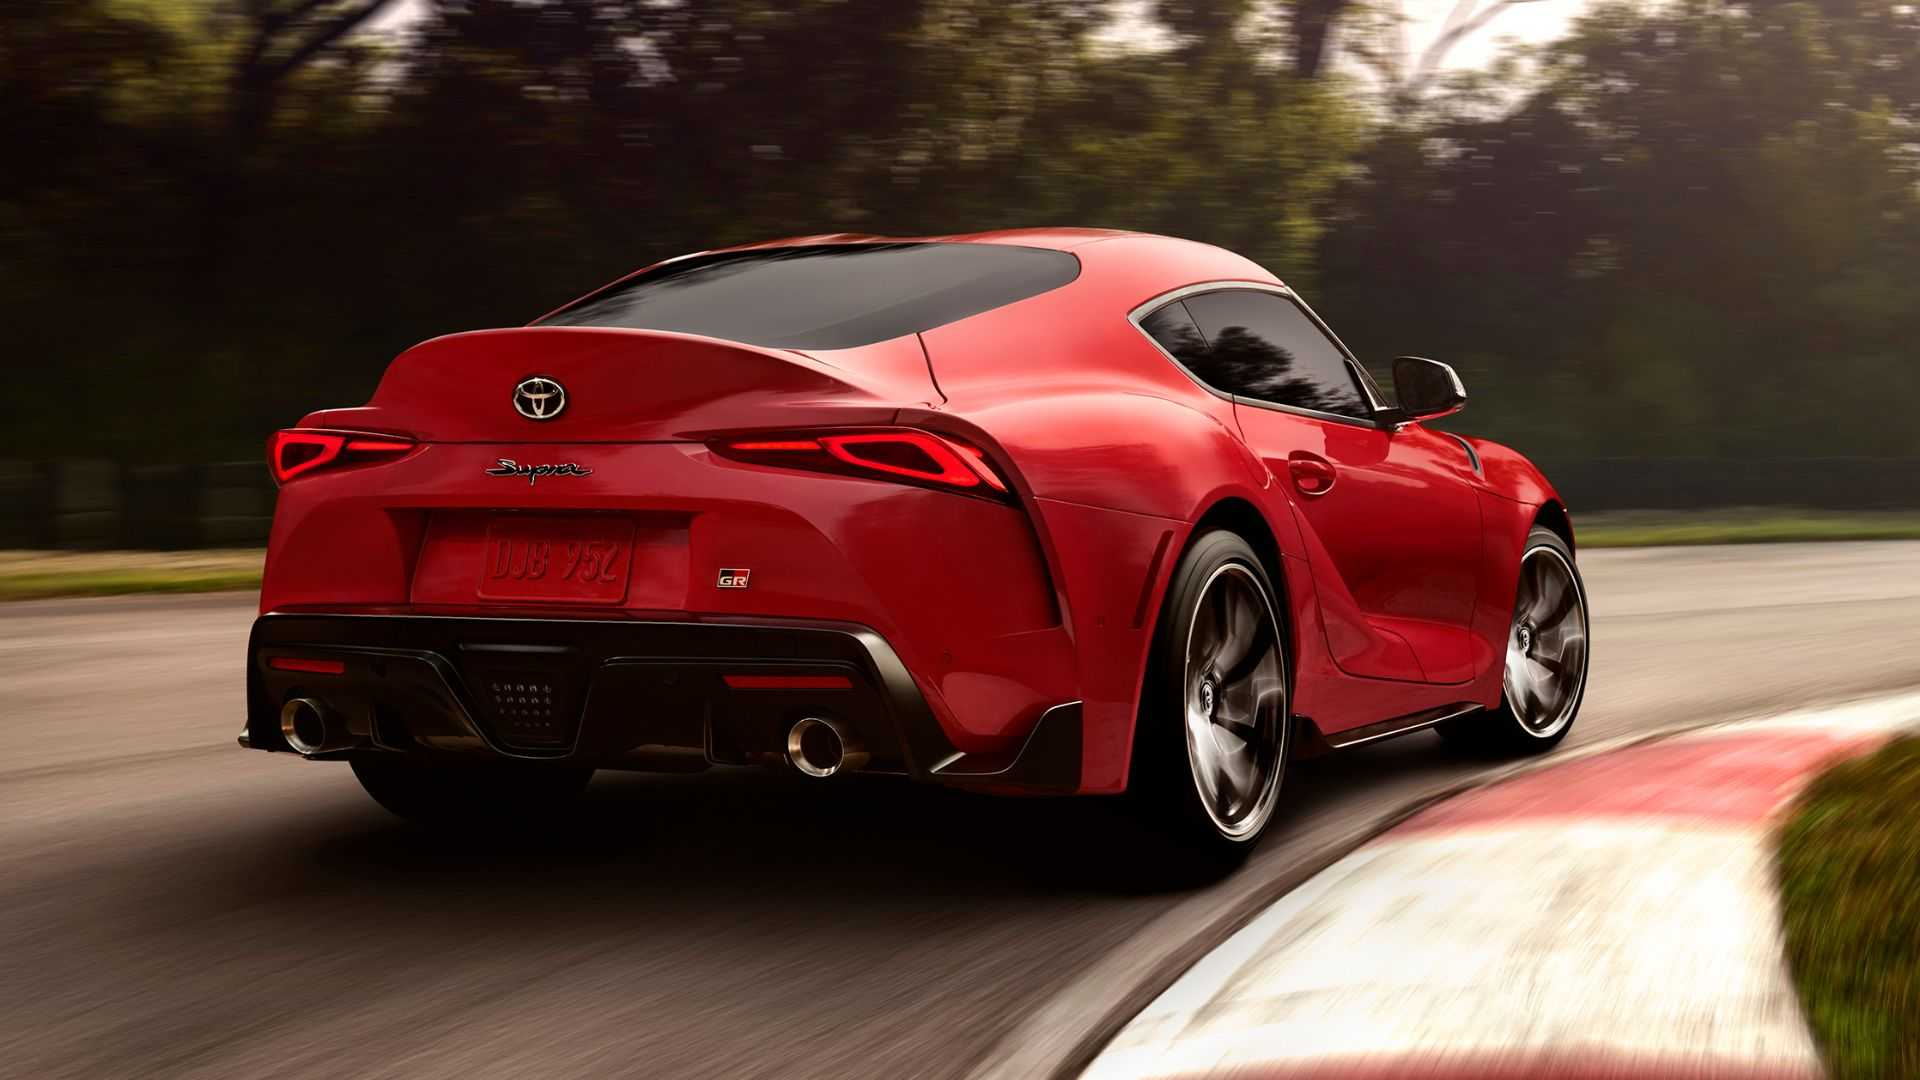 30 The Best Toyota Supra 2019 Specs